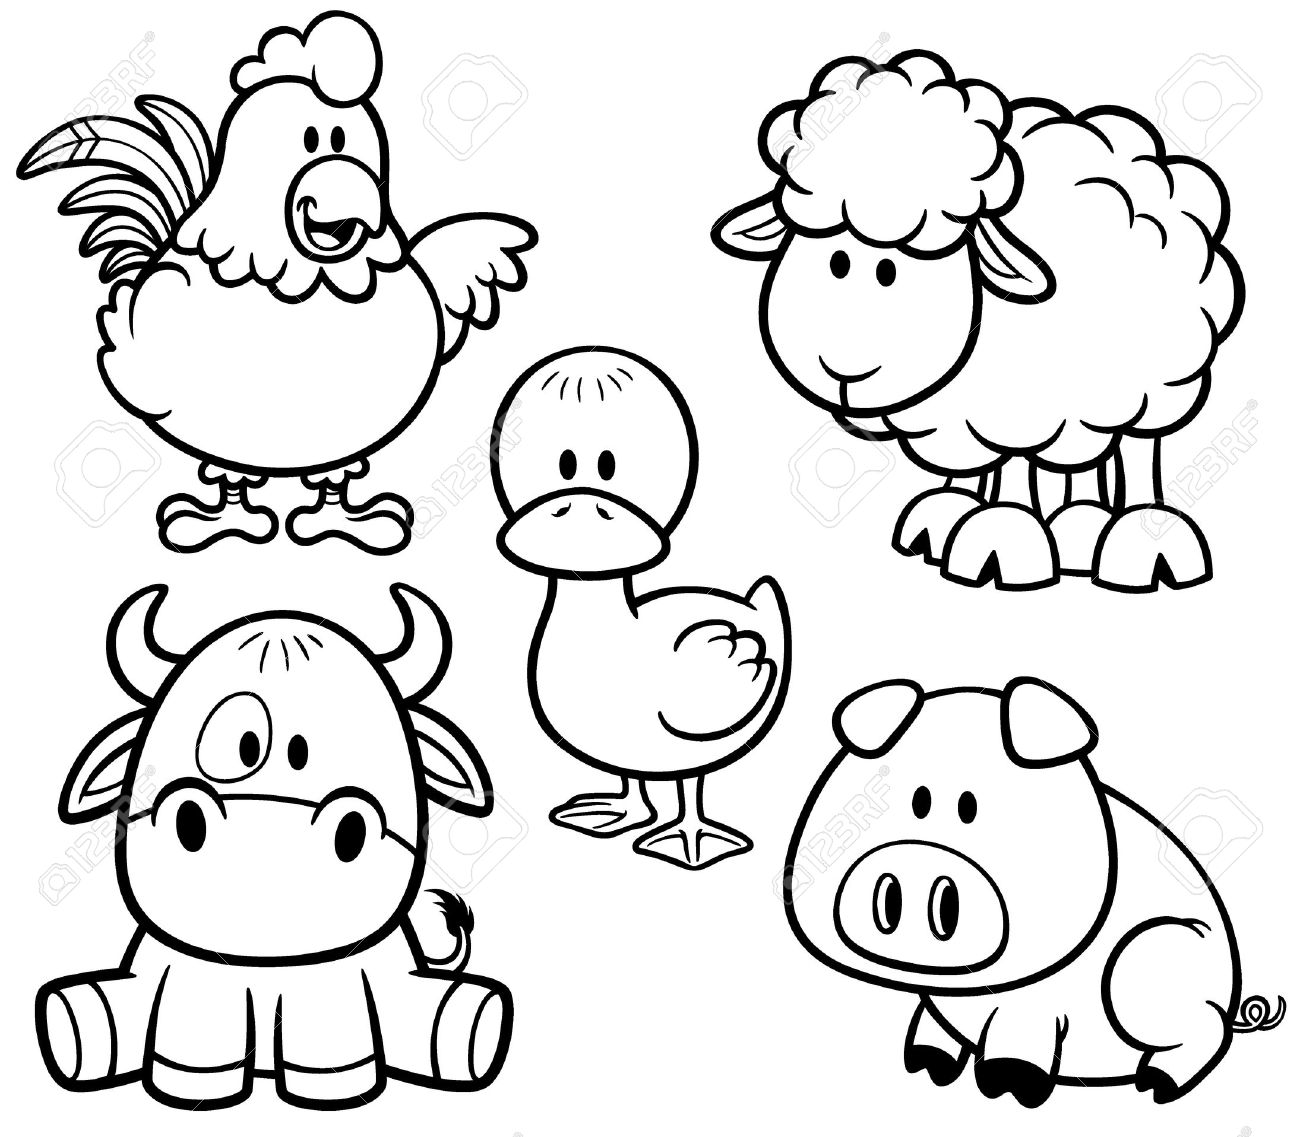 baby animals pictures to color cute baby farm animal coloring pages best coloring pages to animals color baby pictures